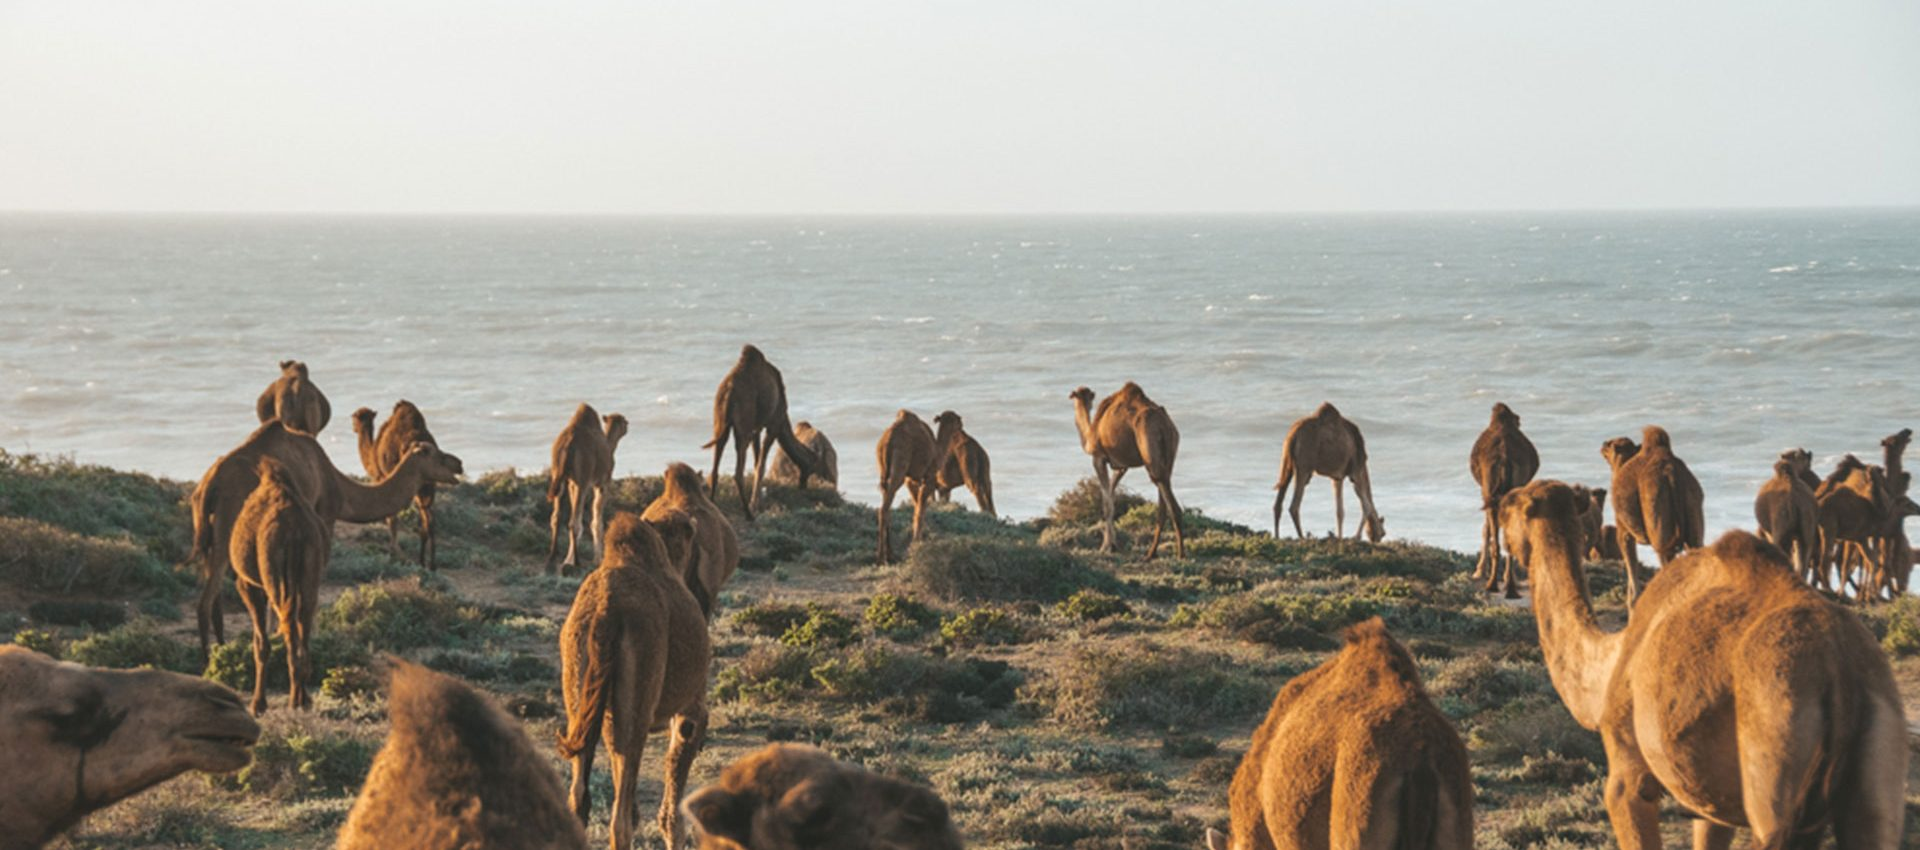 During our day trips heards of Dromedary camels are a regular sight.